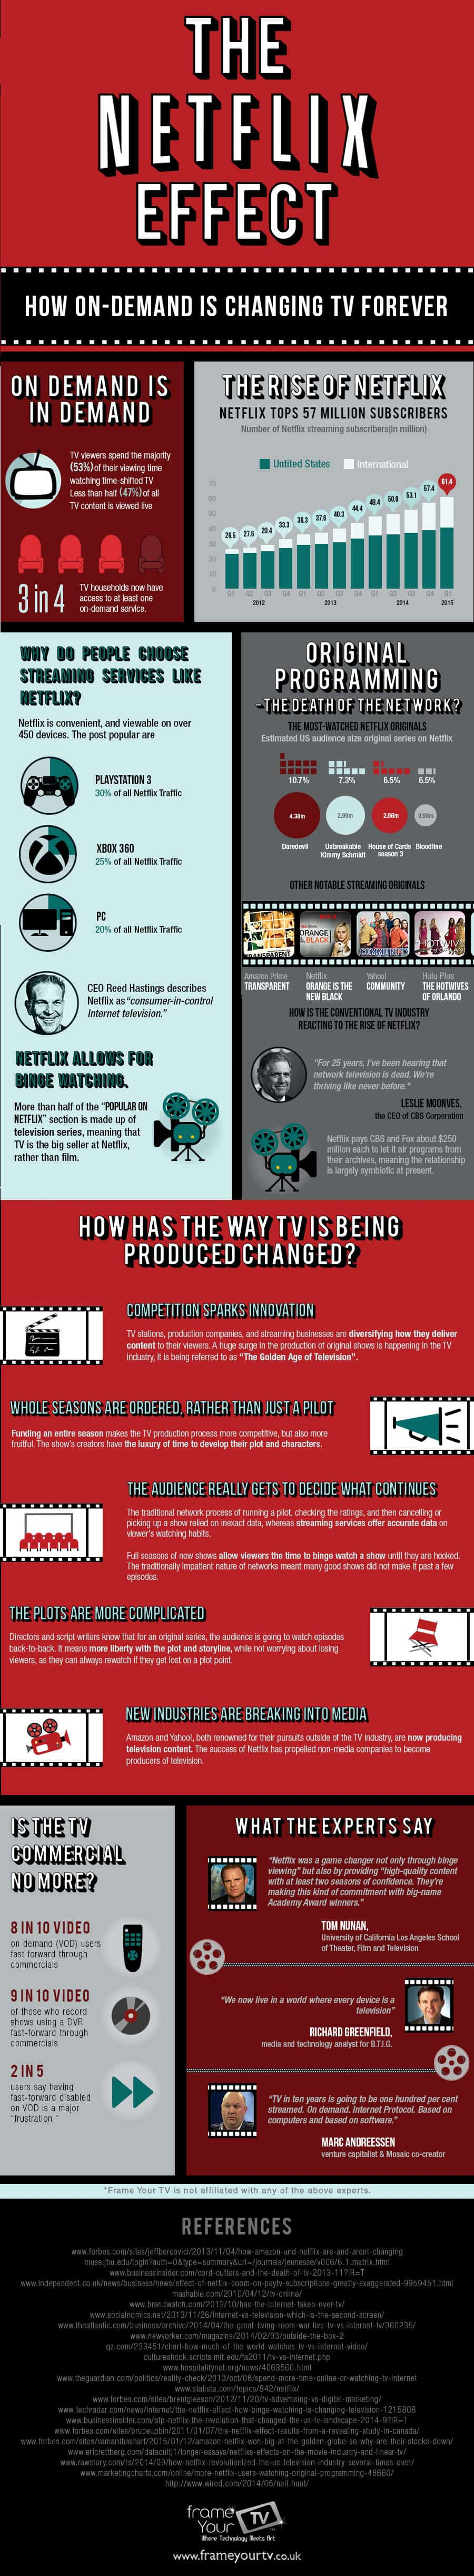 Internet And Cable Providers >> The Netflix Effect: How Streaming Is Killing Cable | Daily Infographic